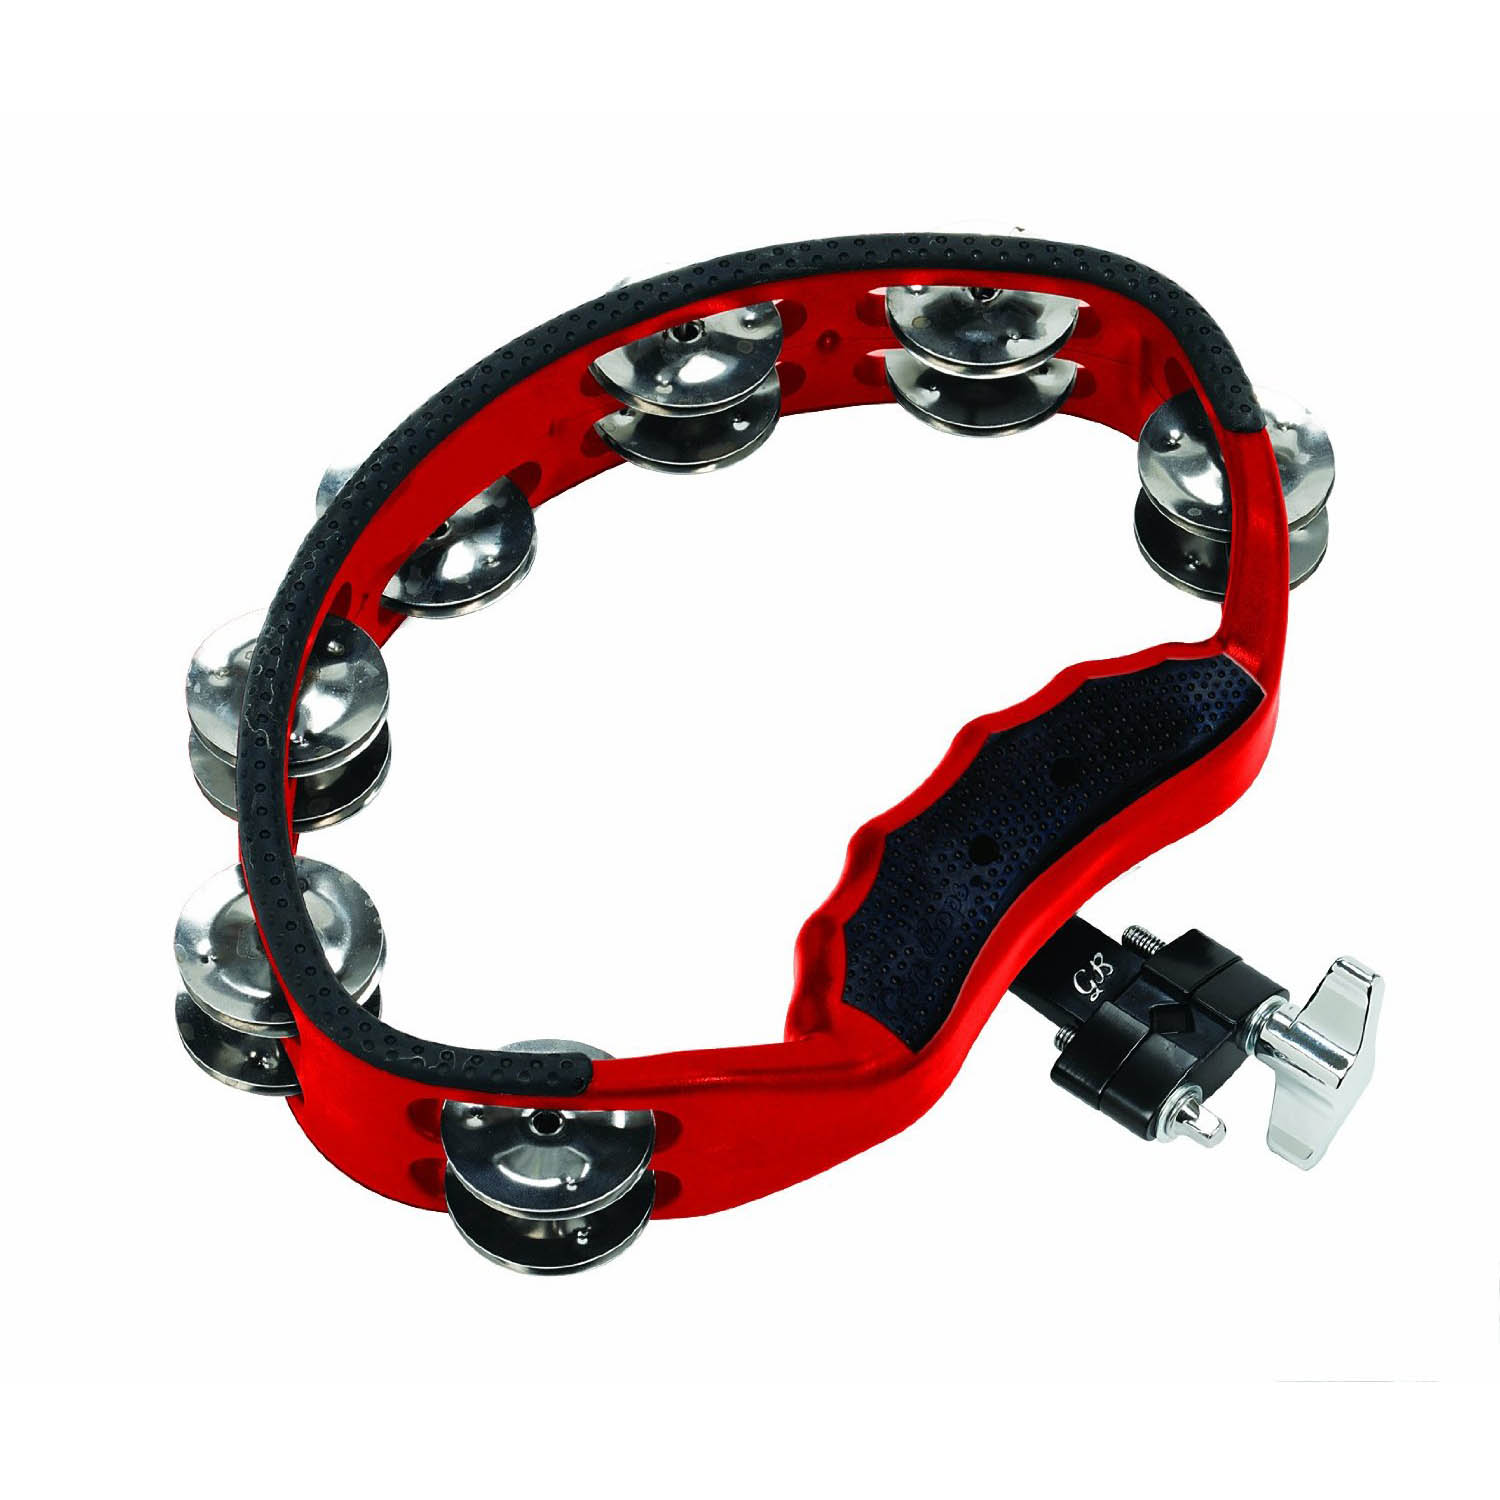 Gon Bops Tambourine with Quick Release Mount, Red